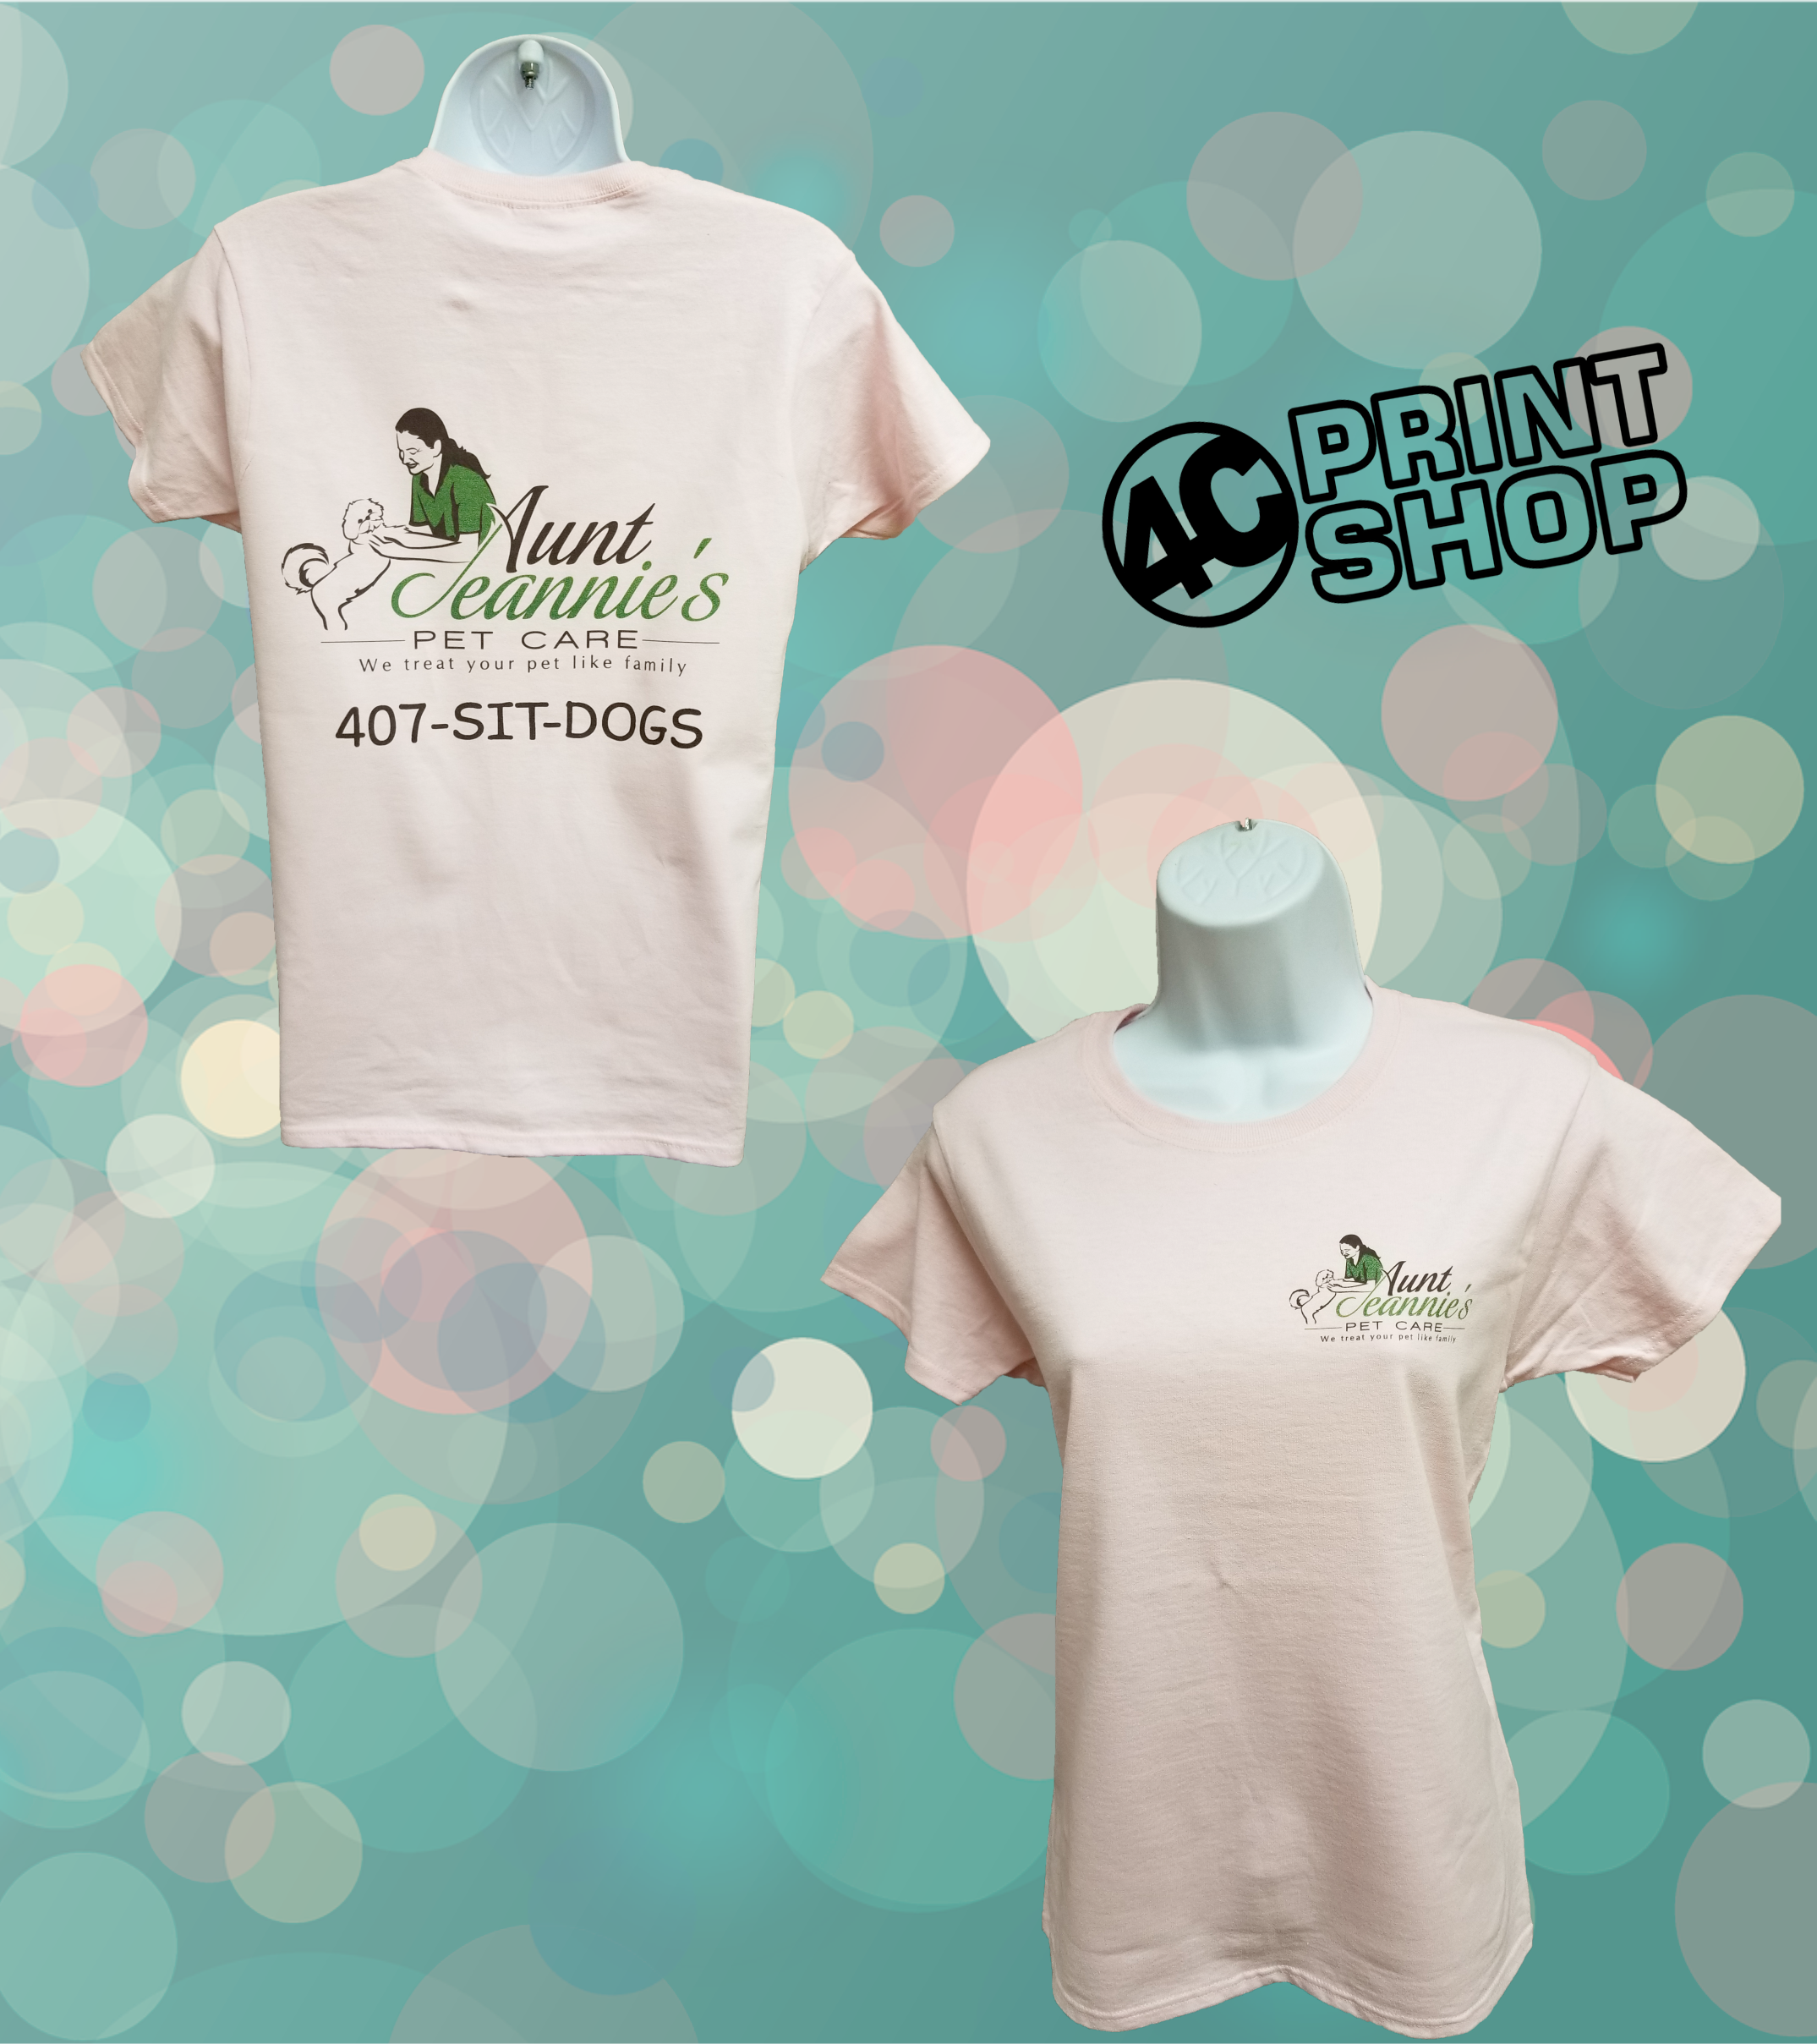 Look Professional No Matter The Job Start Ordering Your Custom Shirt Today From 4c Print Shop Custom Tshirt Design Custom Shirts Print